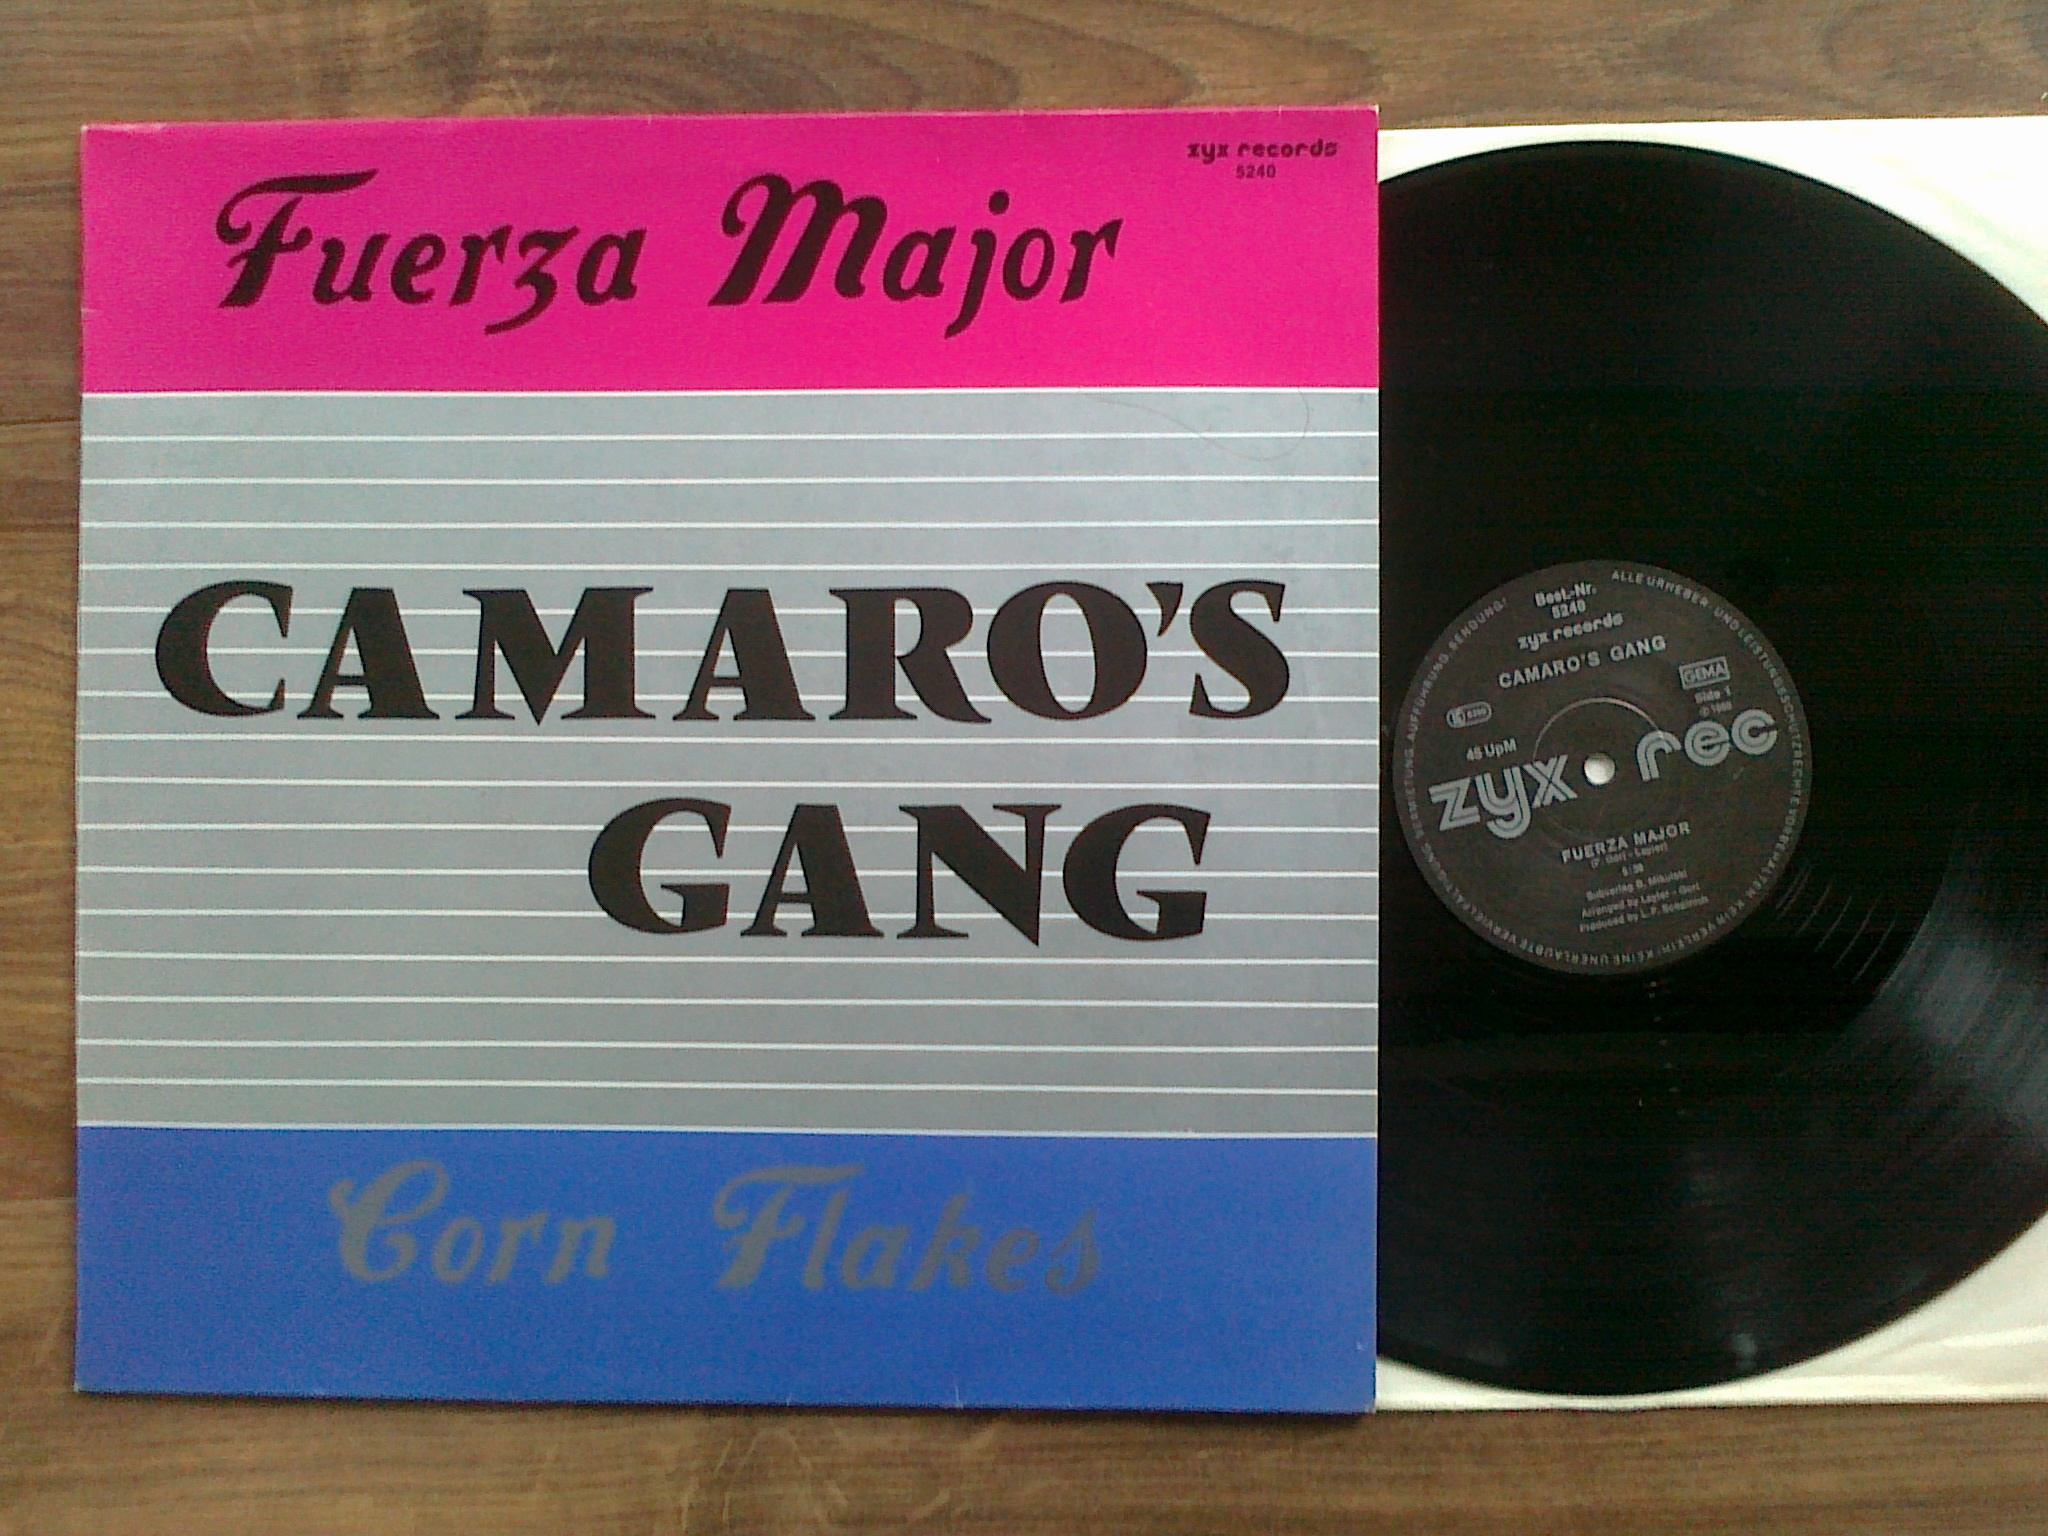 Camaro's Gang - Fuerza Major